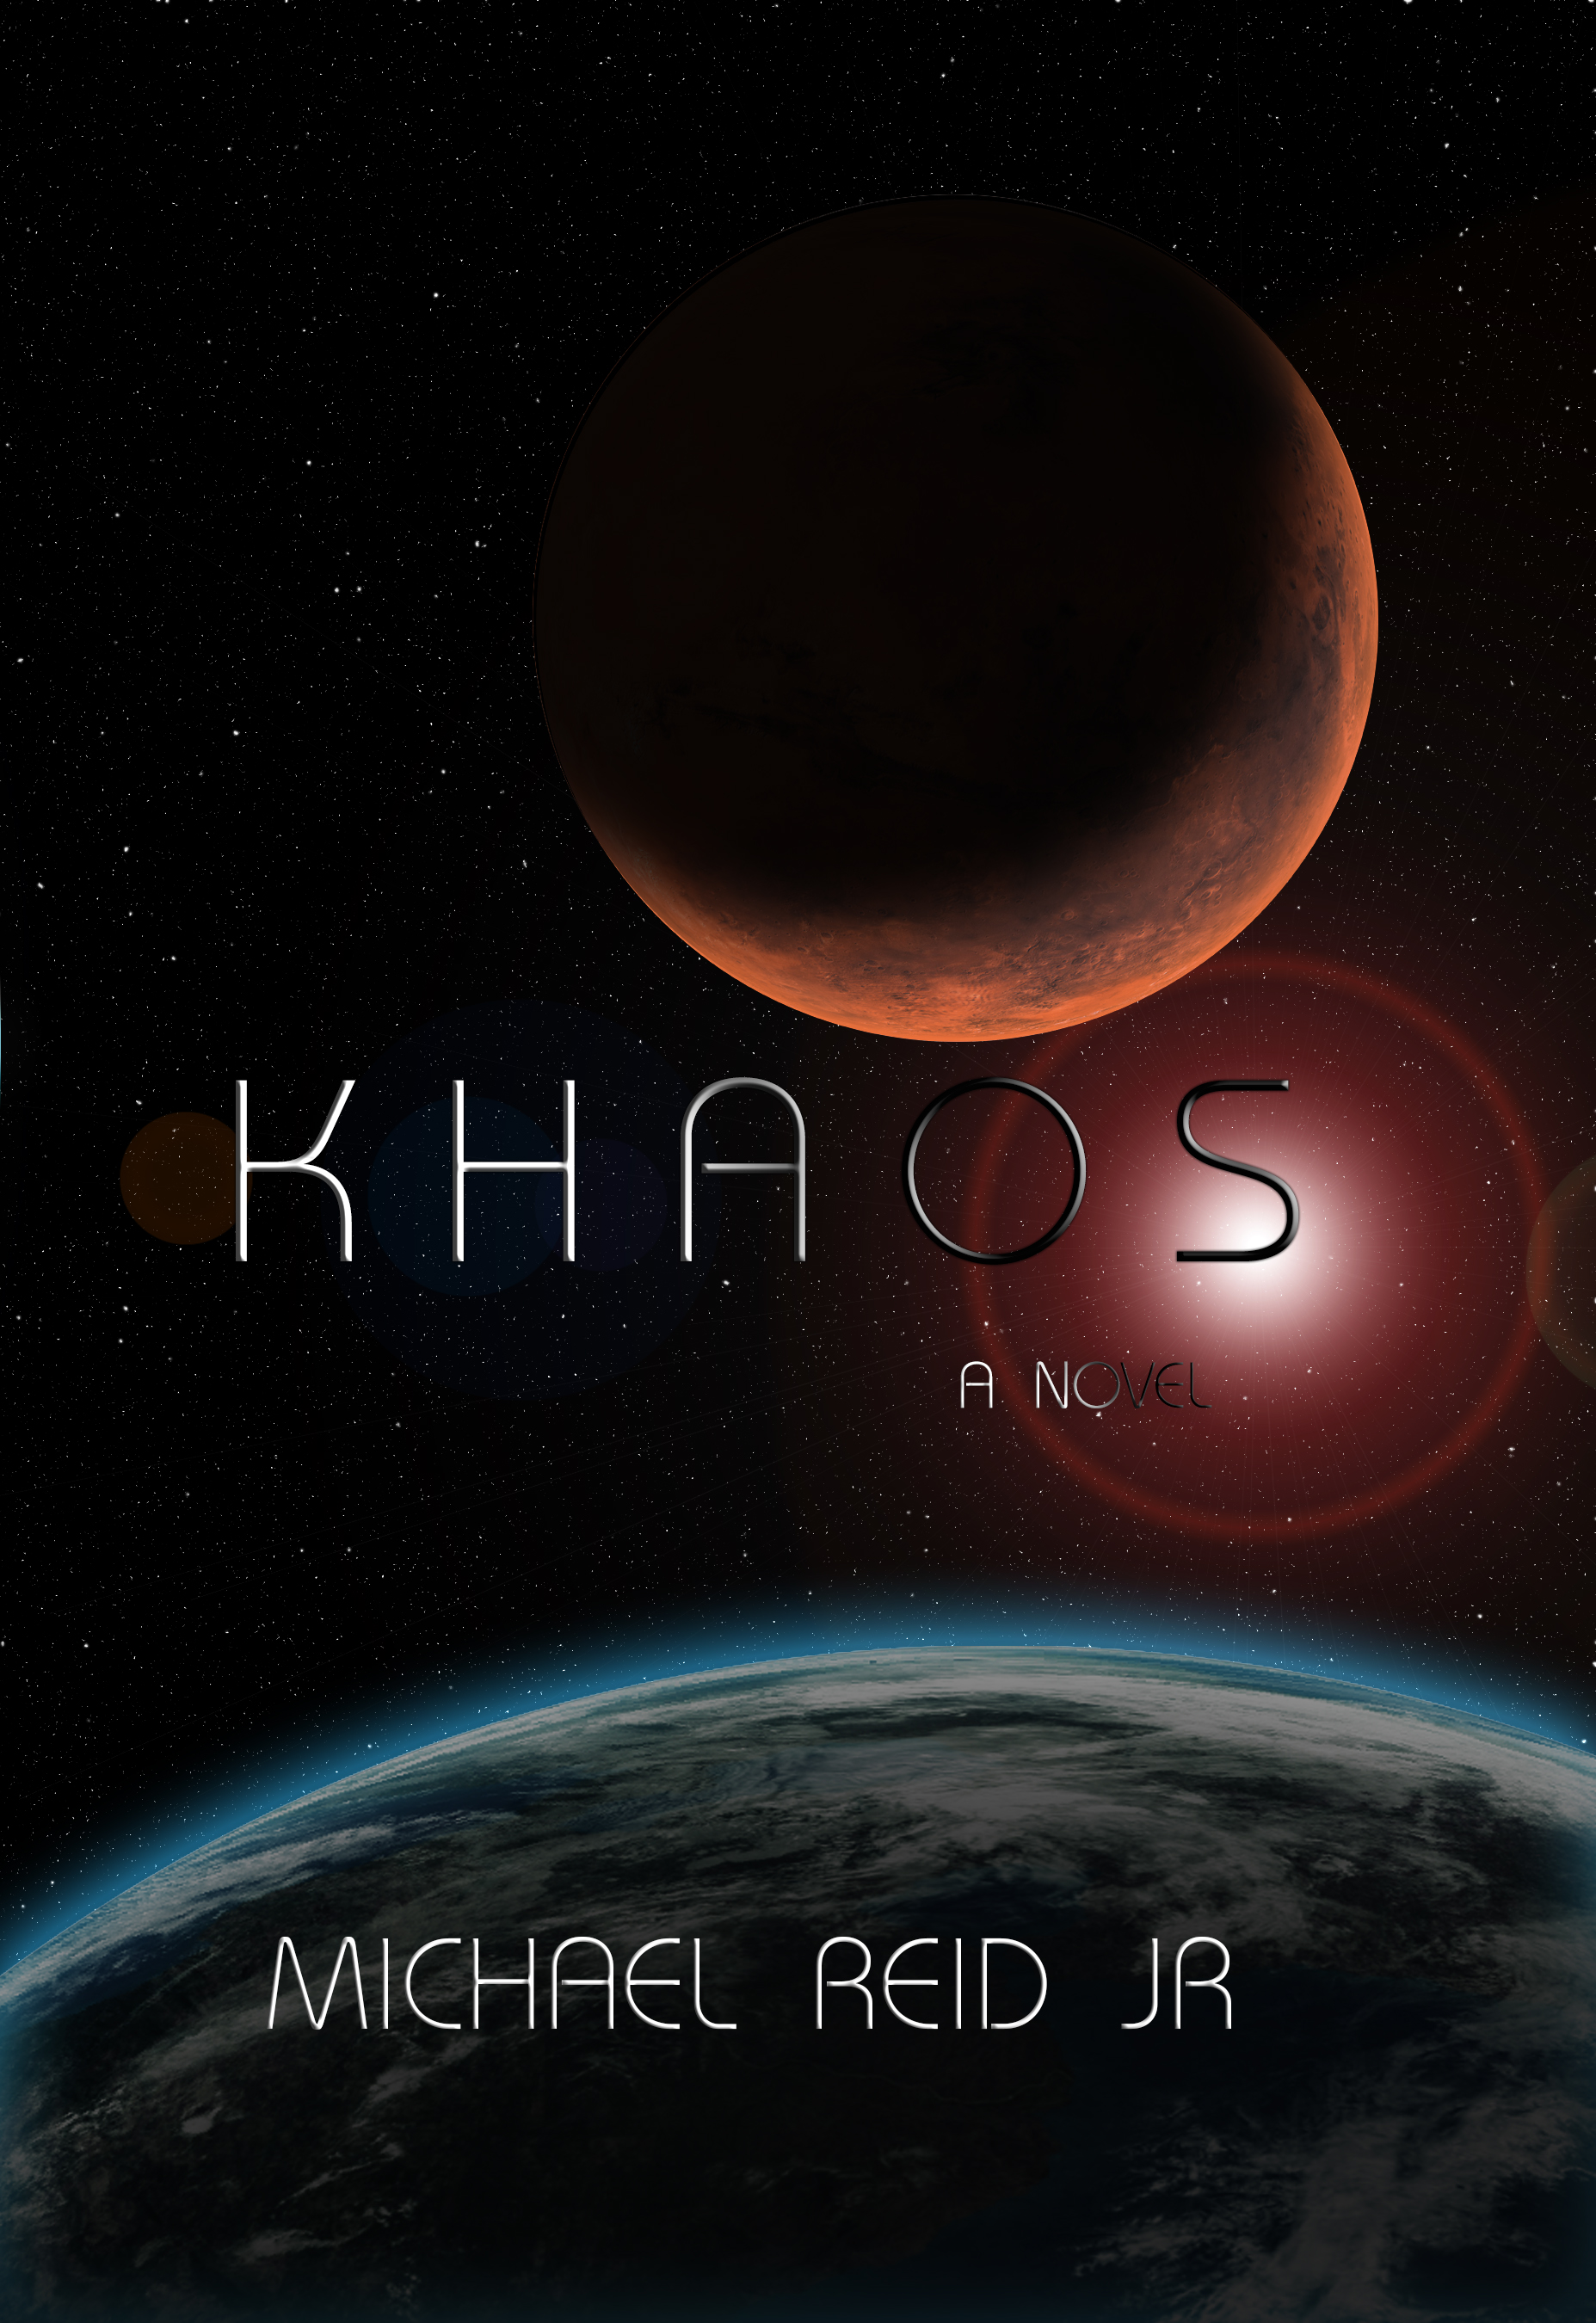 Billions around the world celebrated Khaos when it was finally revealed, awestruck by the rogue planet entering our solar system. However, for a small group of individuals, it was apocalyptic. Dr. Peels had predicted the path of the celestial body, warning the governments of the world that a near miss was likely. Still, no government had listened, citing other predictive models as the most likely path.  In secret, Dr. Peels built a cooperative effort between private industry, lobbied congress and passed laws, ensuring his veiled plans could unfold. Quickly, humanity began to crumble, coups ensued, and anarchy took hold. Dr. Peels was forced to launch his hand-picked crew early, but things quickly fell apart before the mission began. As the vulnerable crew raced towards Mars, the one thing which held them together wasn't human, it was an android named Omega, tasked to learn all it can before it's too late. It's a race against time, gravity, and the laws of nature in this Khaotic story of salvation.